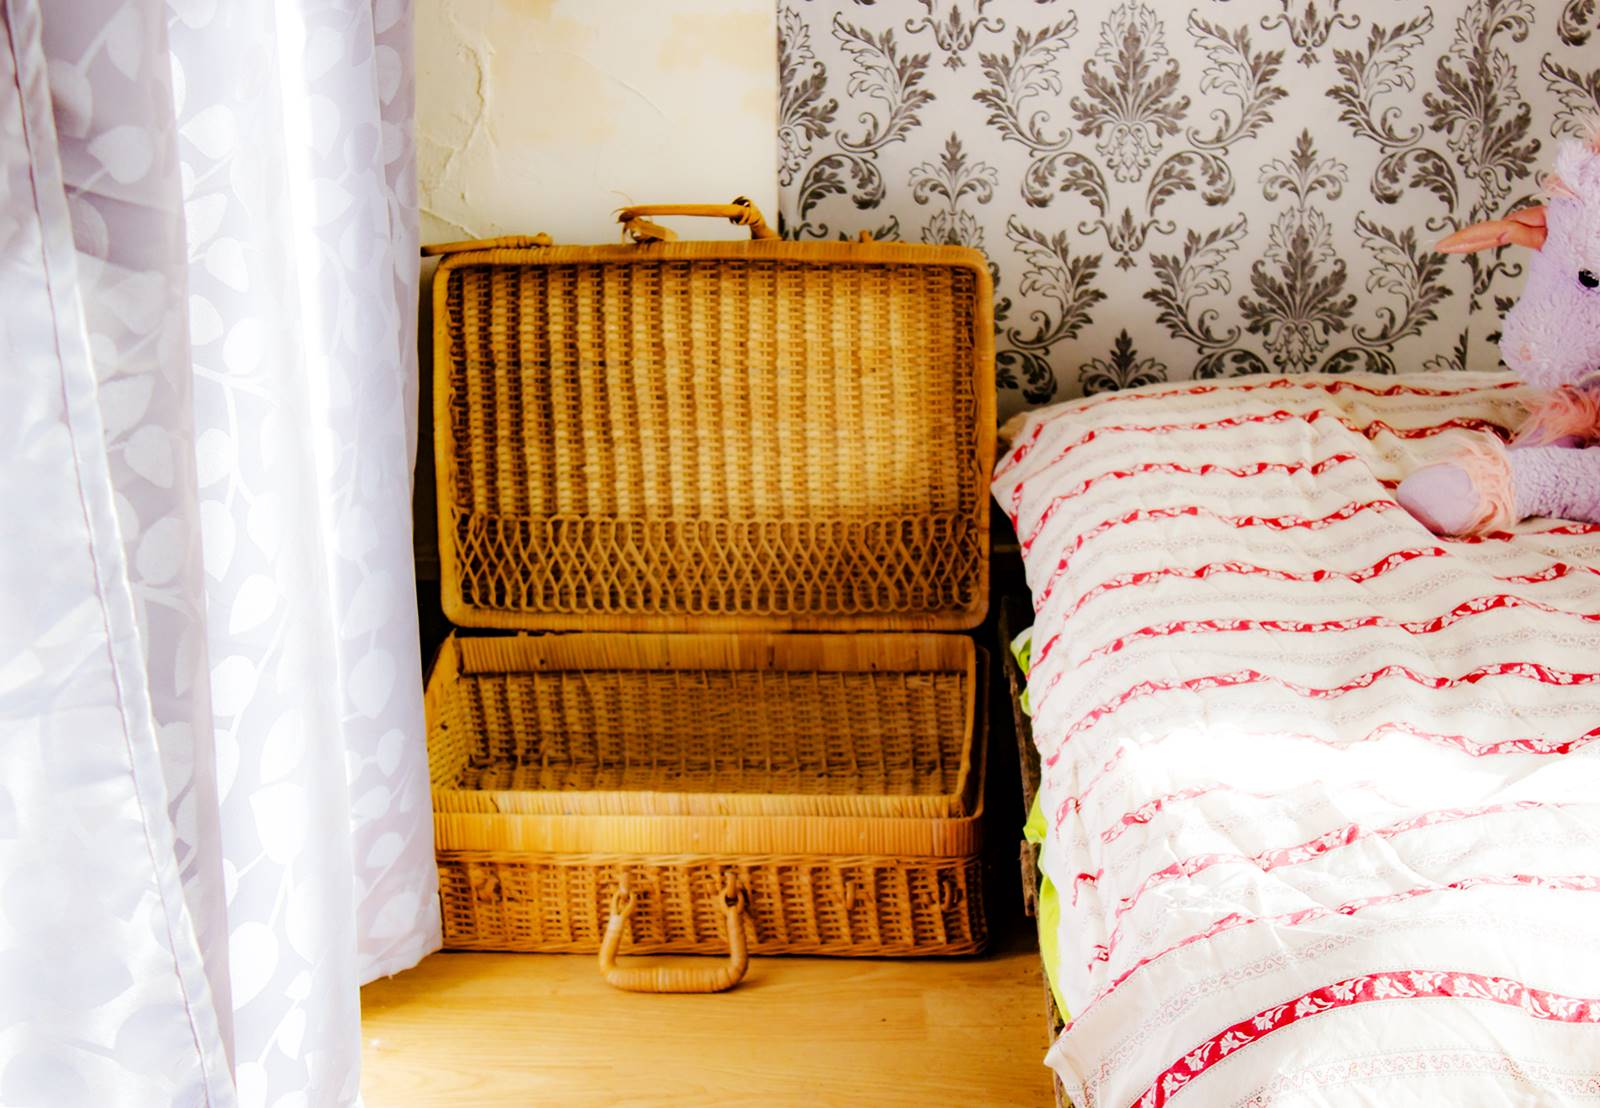 Diy chambre dortoir enfant france 5 blog